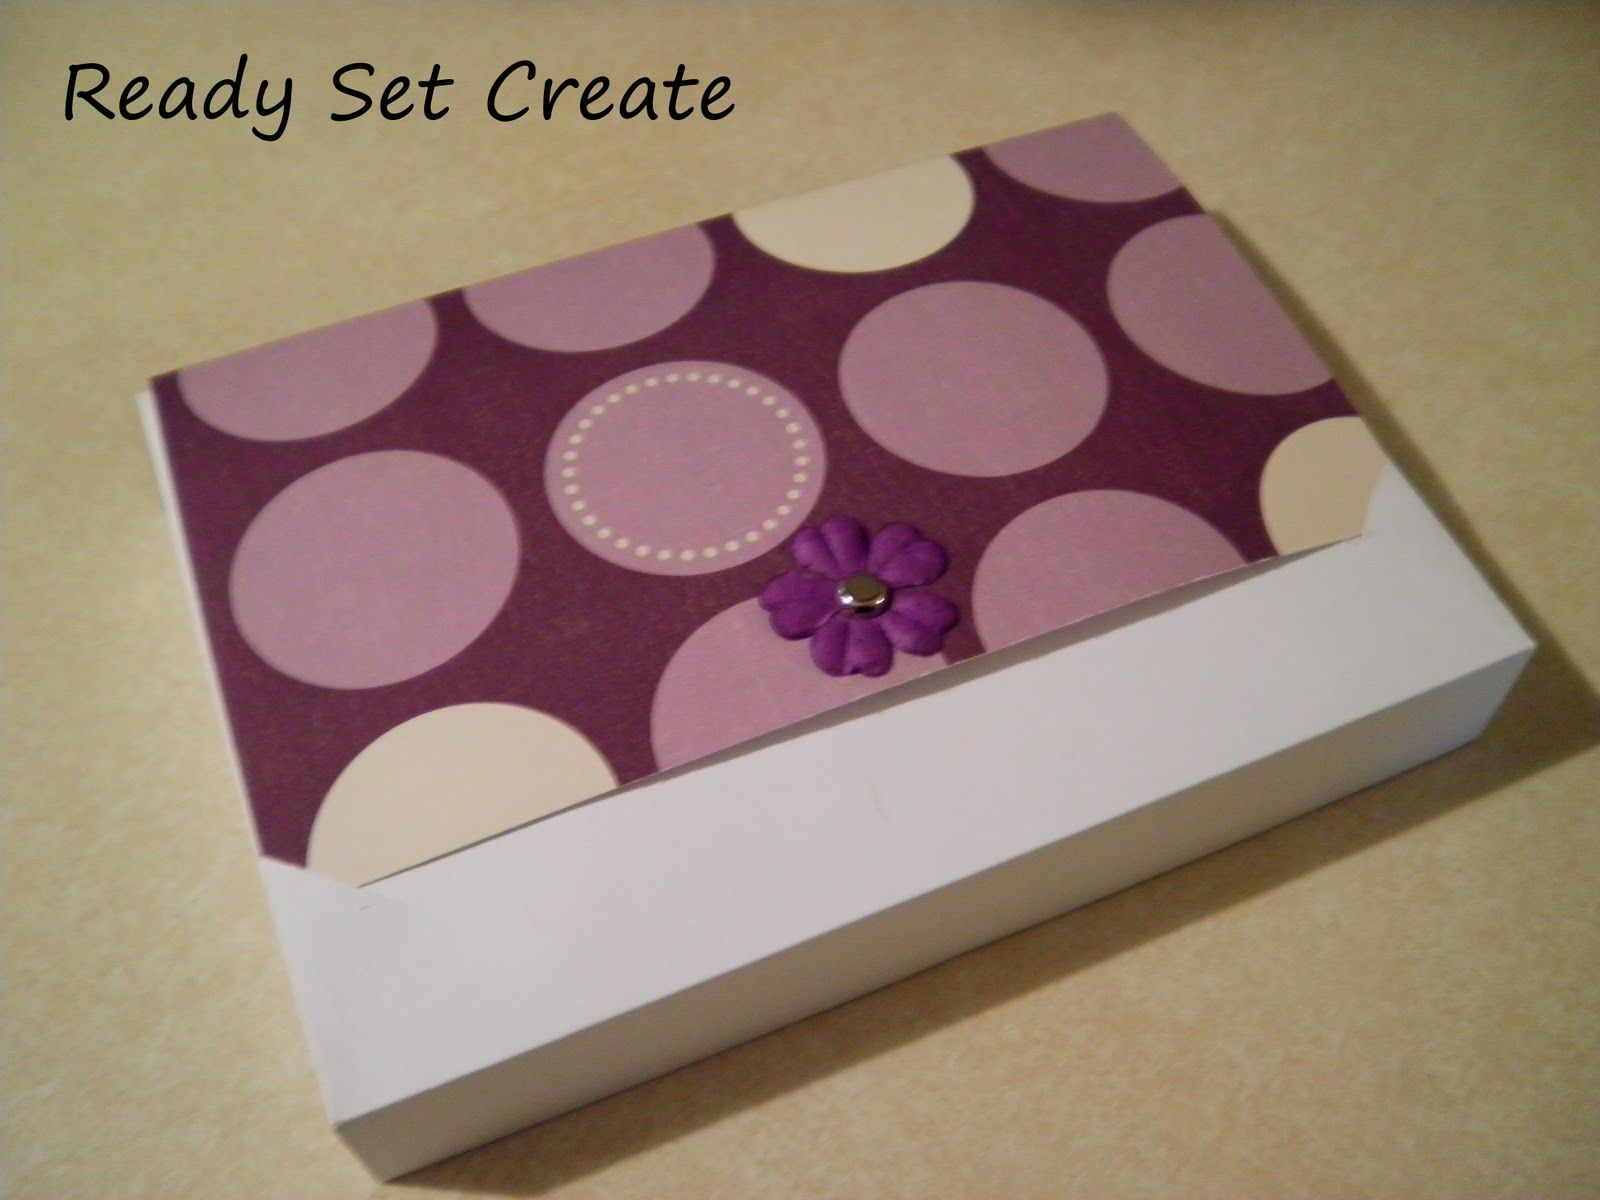 Ready set create crafts of christmas part gift idea